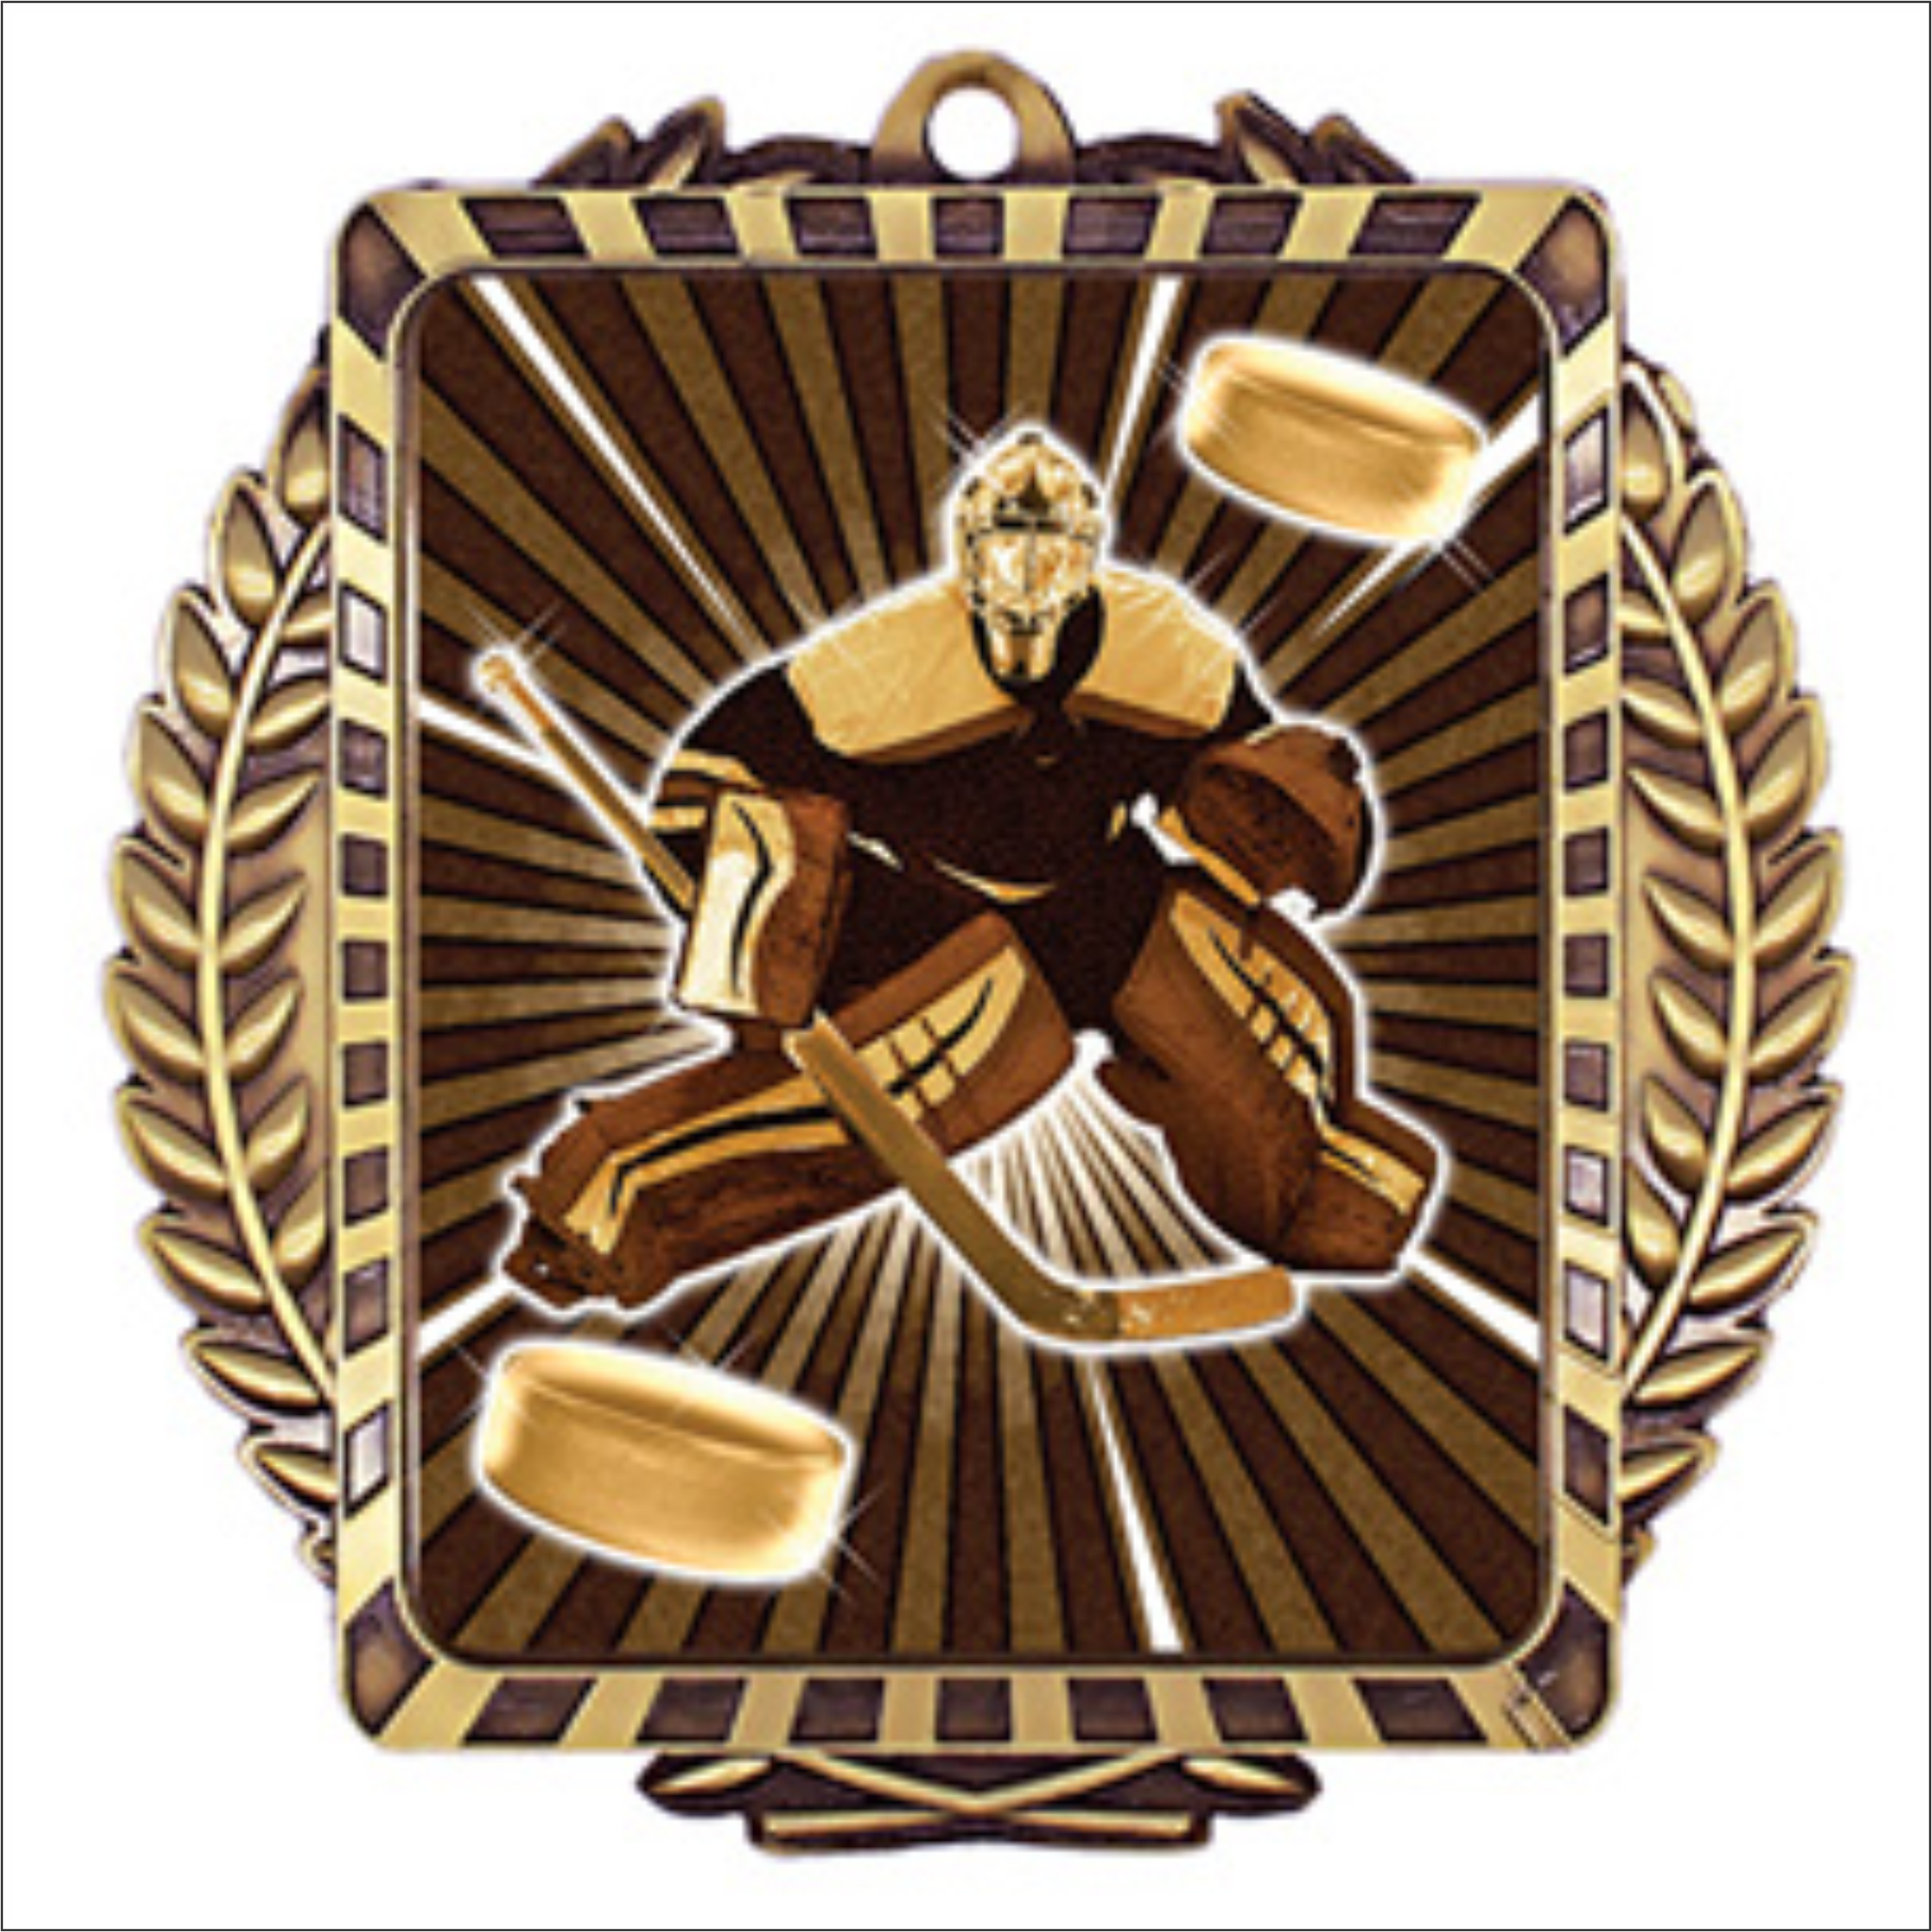 "Hockey Goalie 3.5"" X 3.5"" medallion - Lynx series"